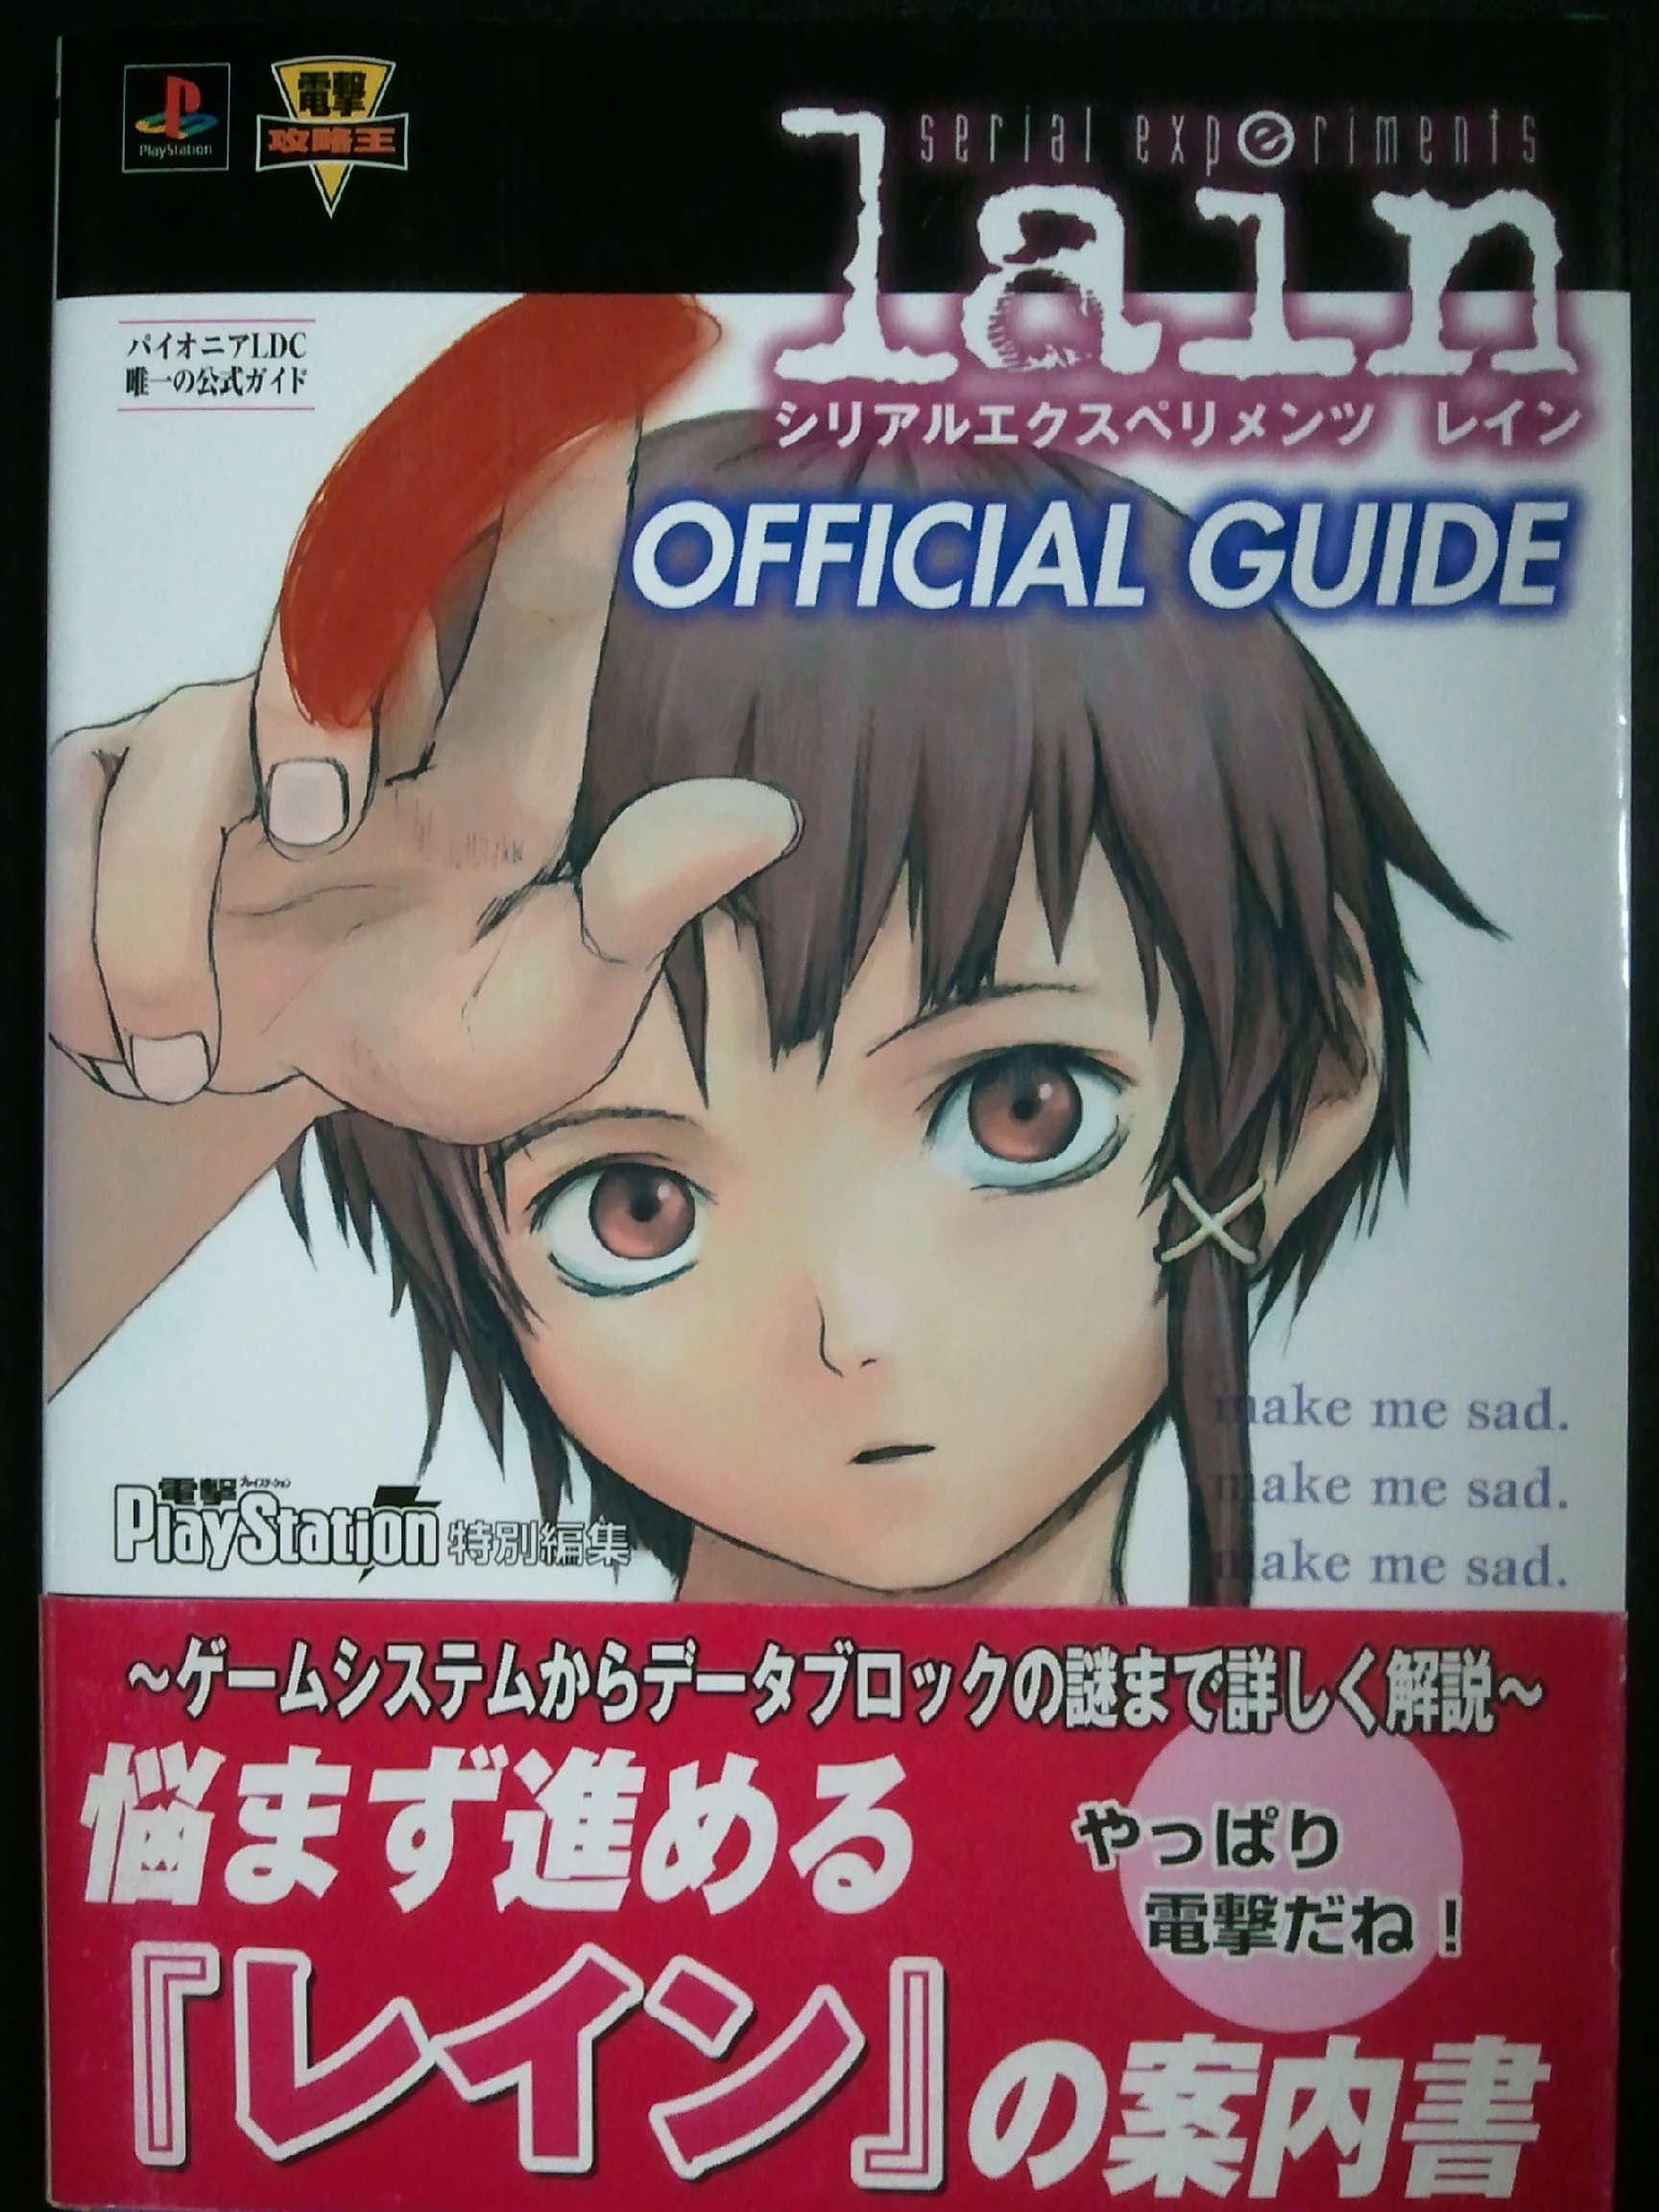 serial experiments lain offical guid